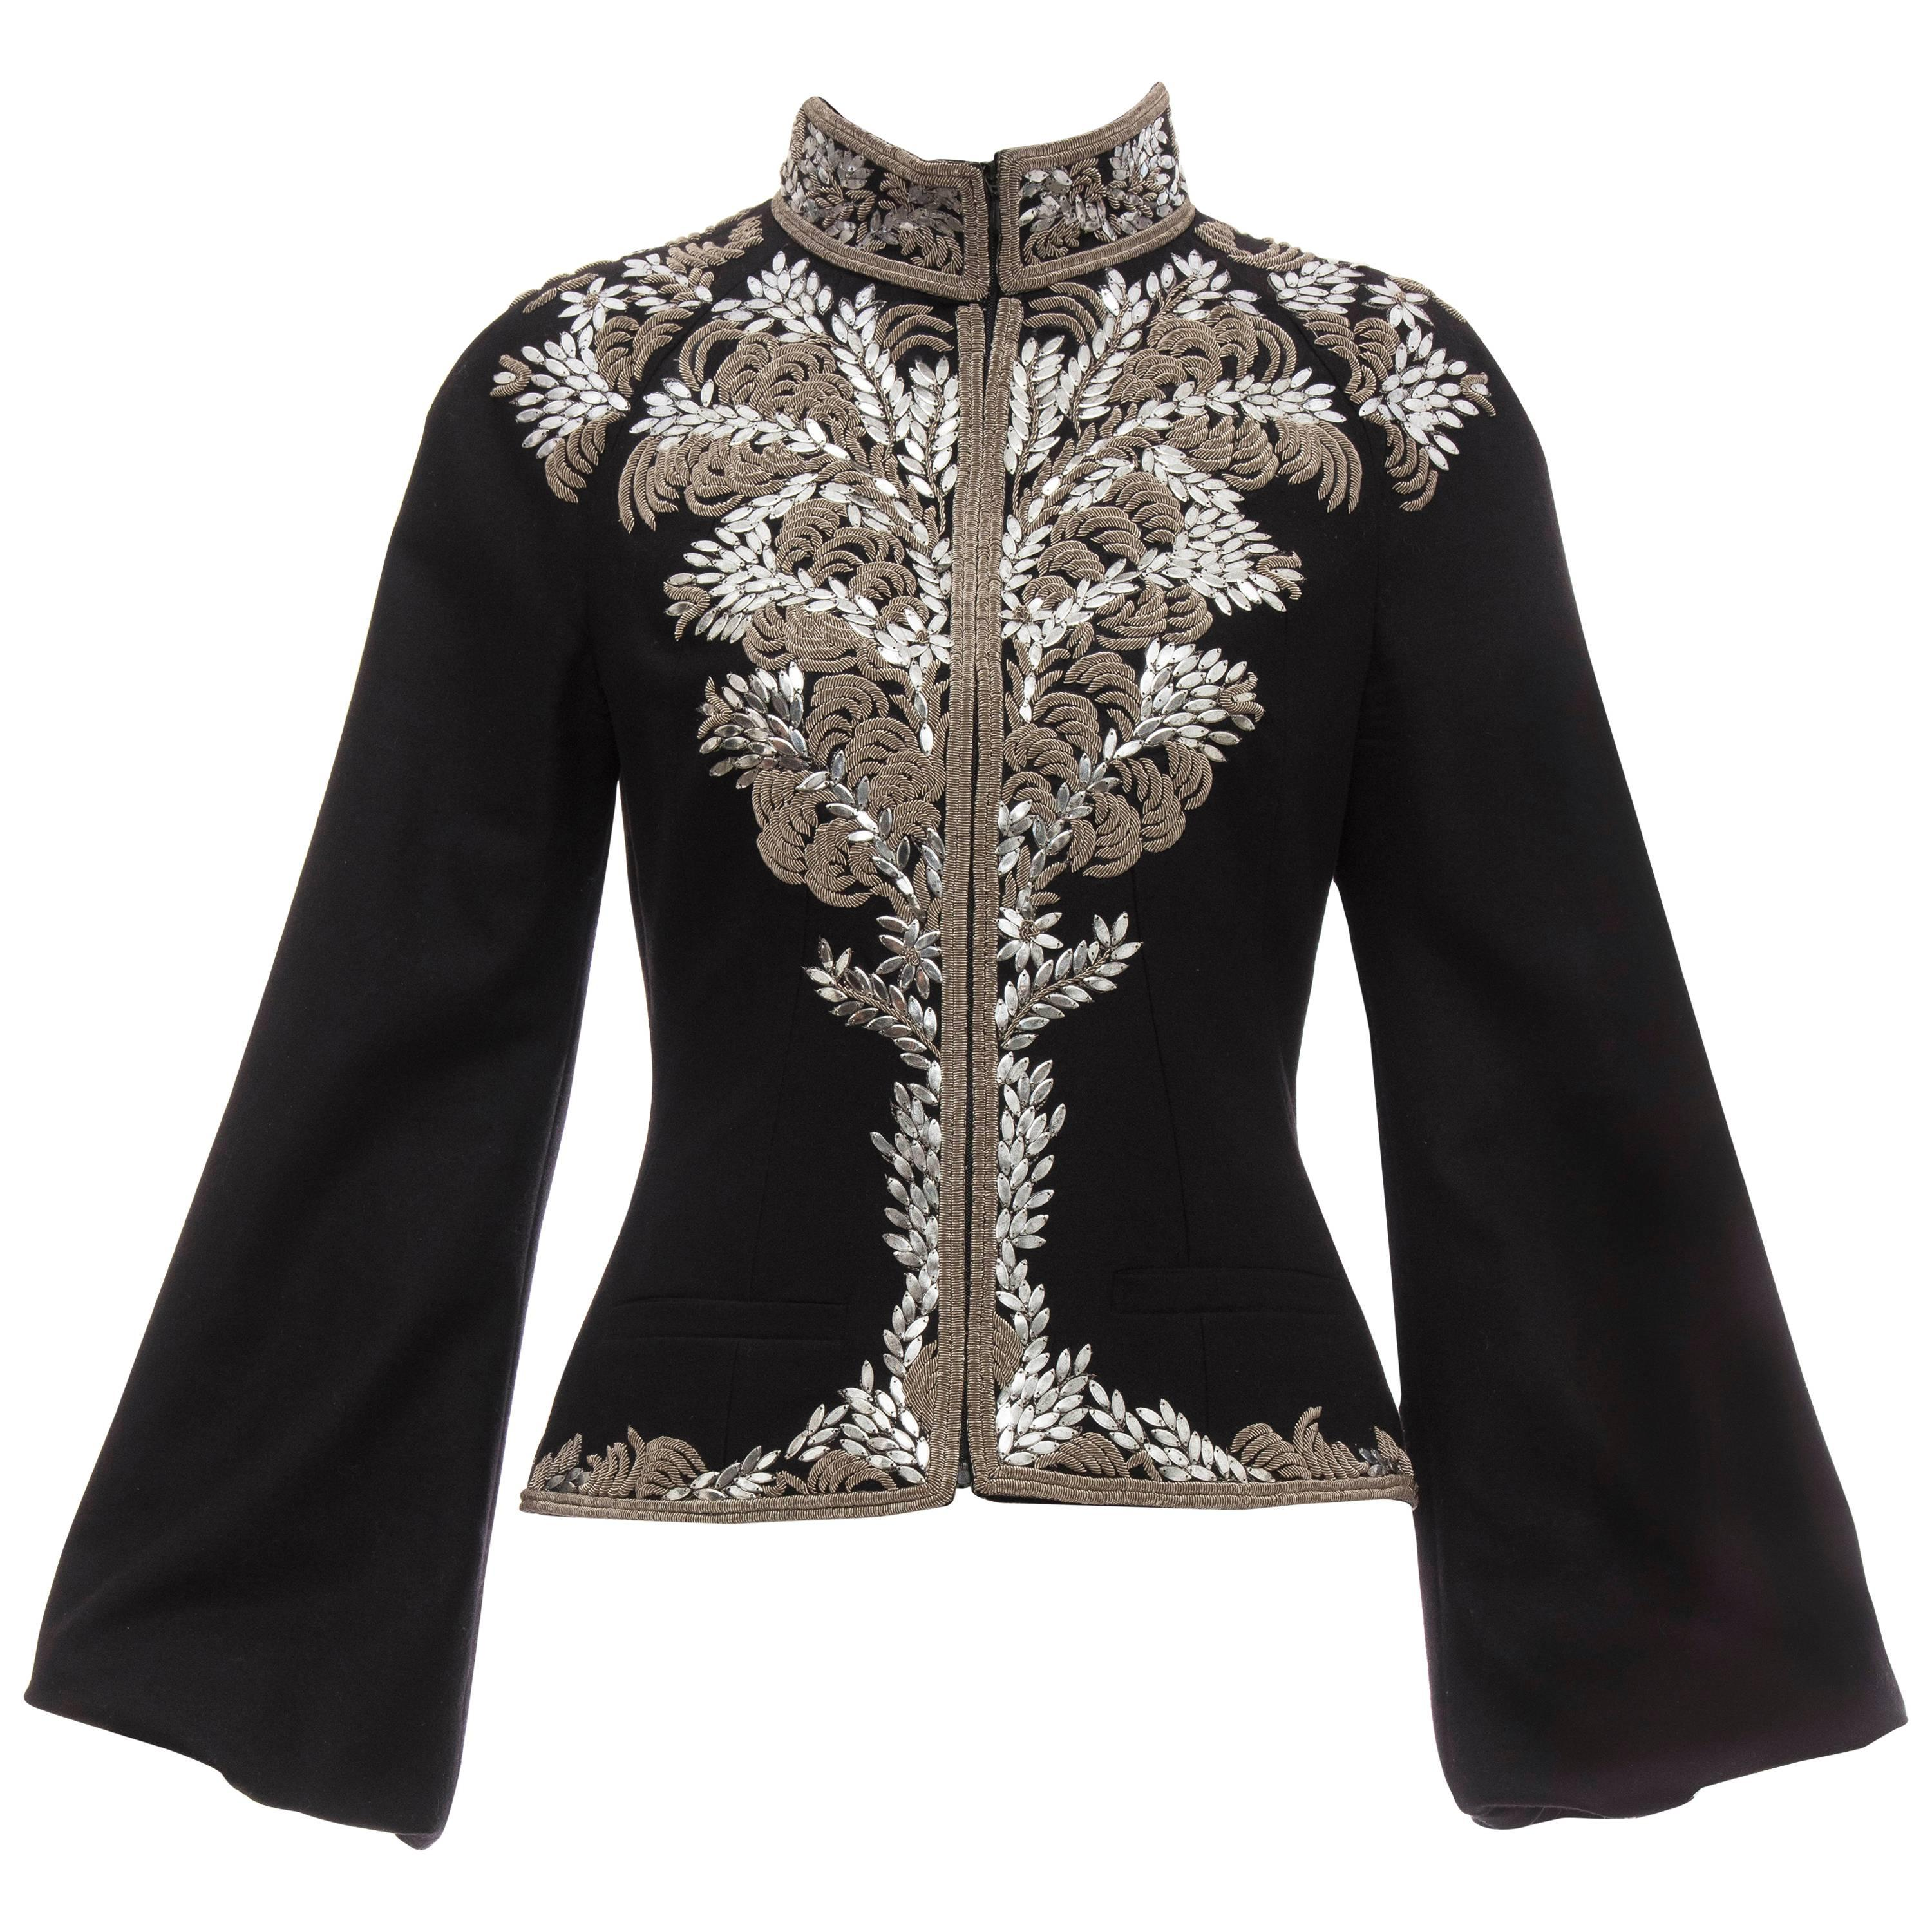 Alexander McQueen Embellished Wool Vest Cheap Best Reliable Cheap Online Brand New Unisex Online Clearance Store For Sale Outlet Sale sMDmH3o4